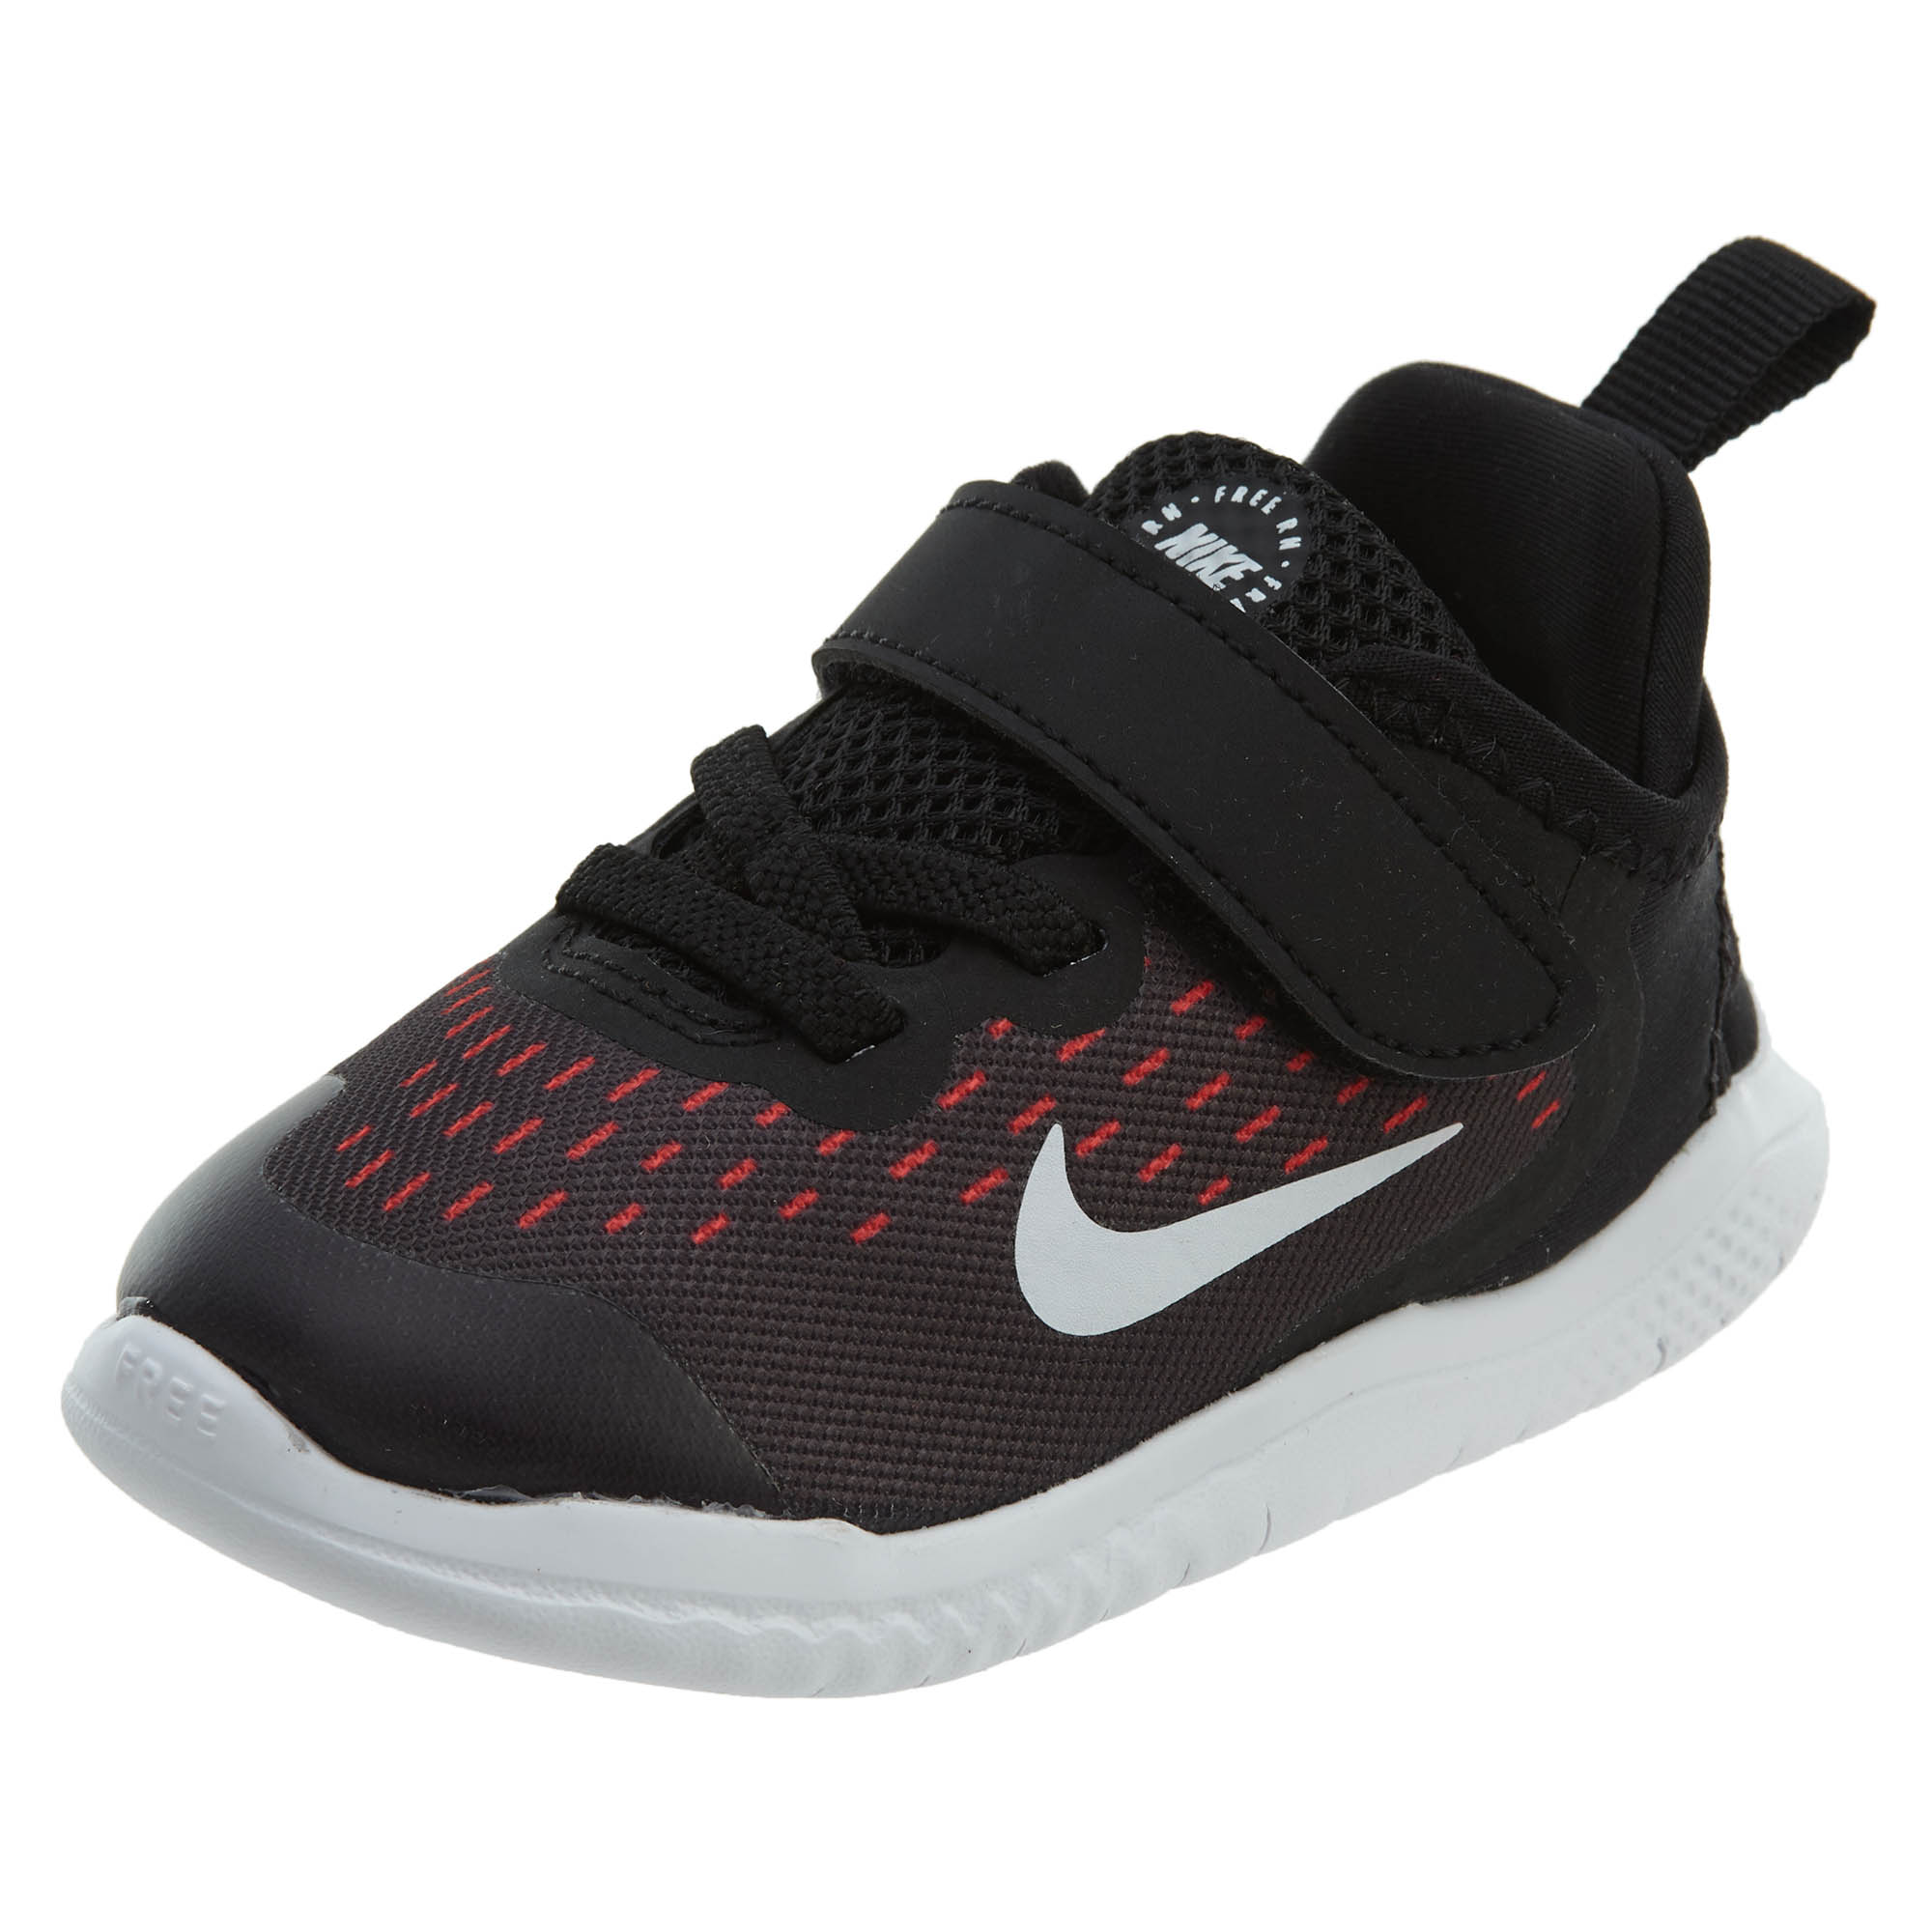 bba19ee8e379f Details about Nike Toddlers Free RN 2018 Running Shoes AH3456-001